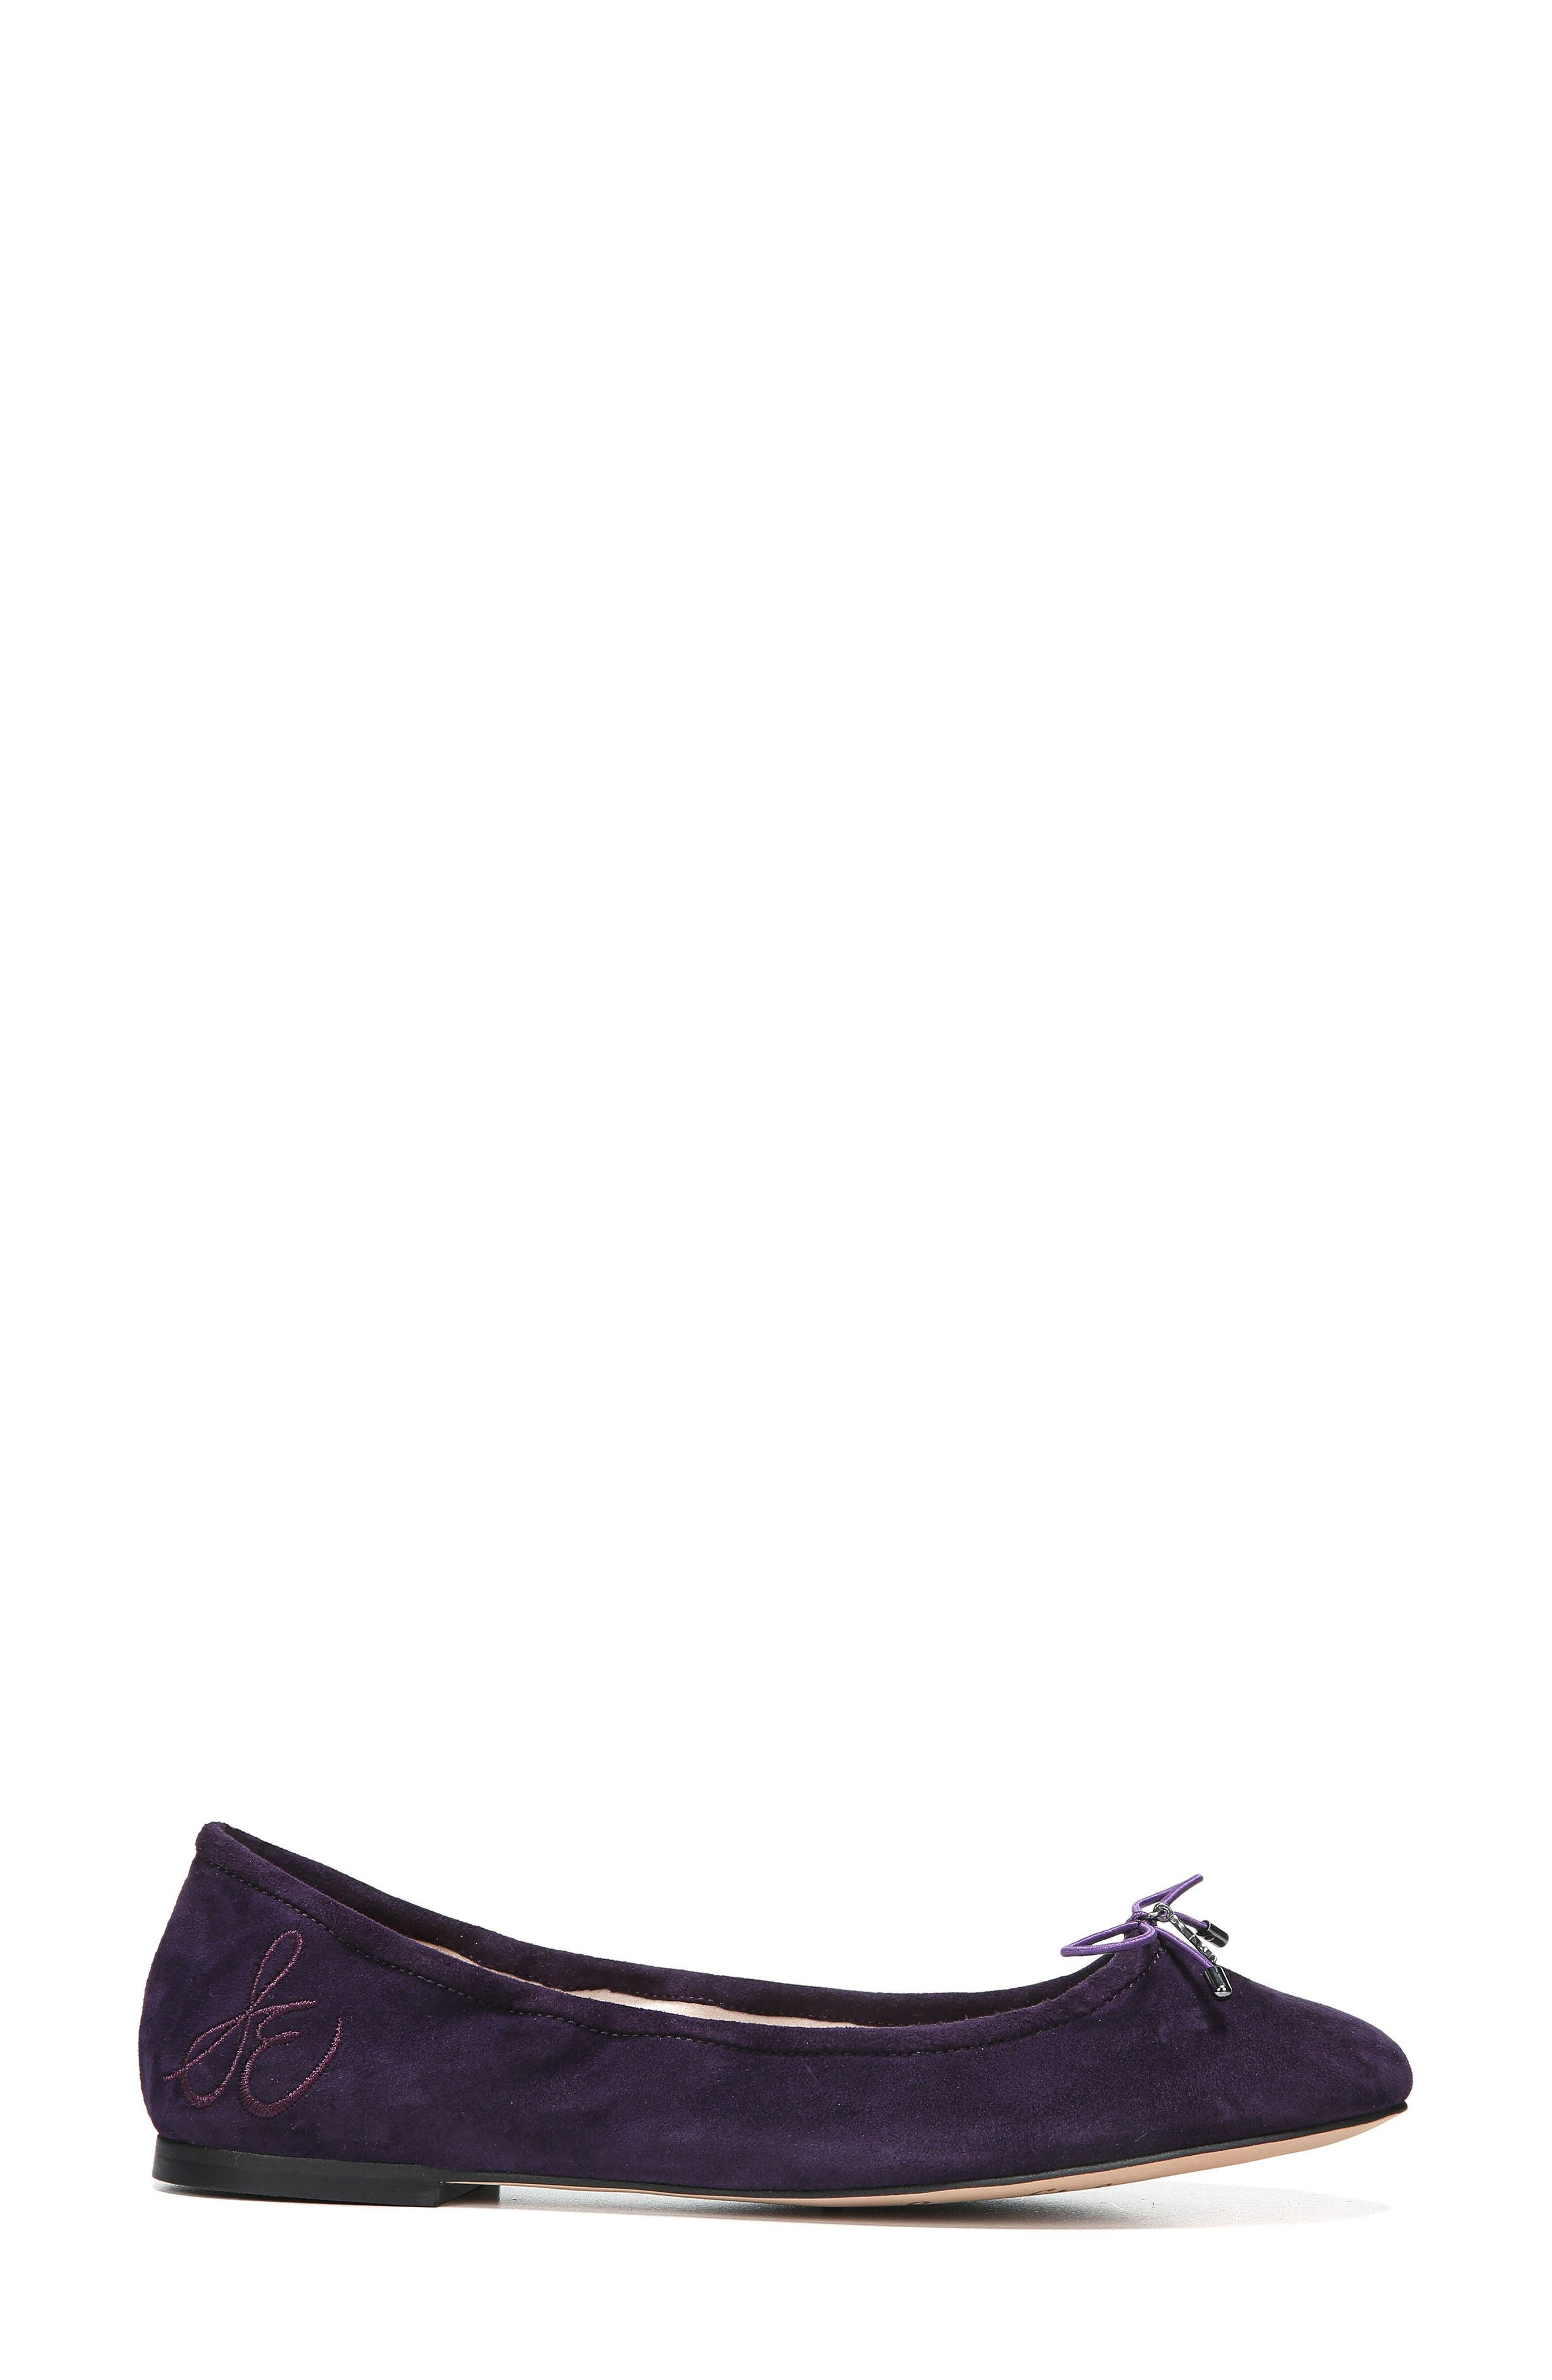 Alternate Image 3  - Sam Edelman 'Felicia' Flat